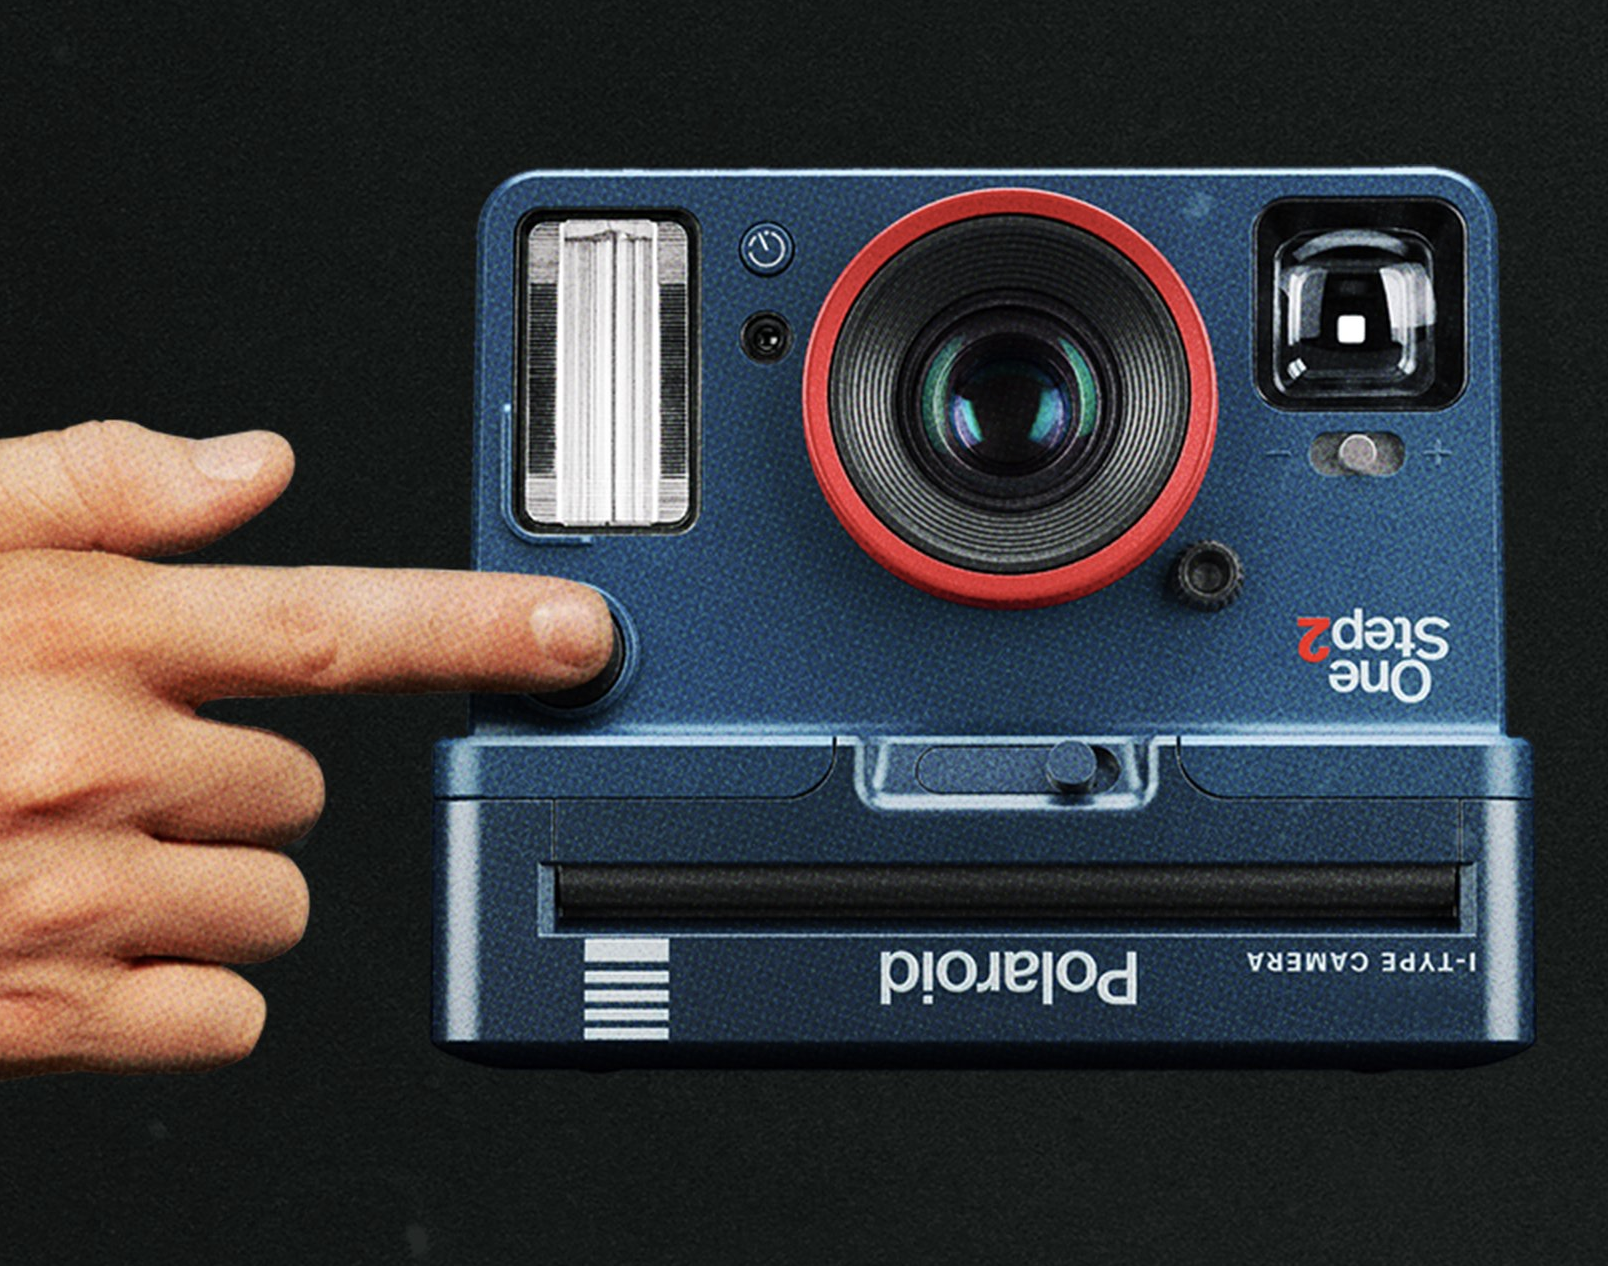 2 Polaroid Releases NEW OneStep 2 Stranger Things Edition Camera - FilterGrade